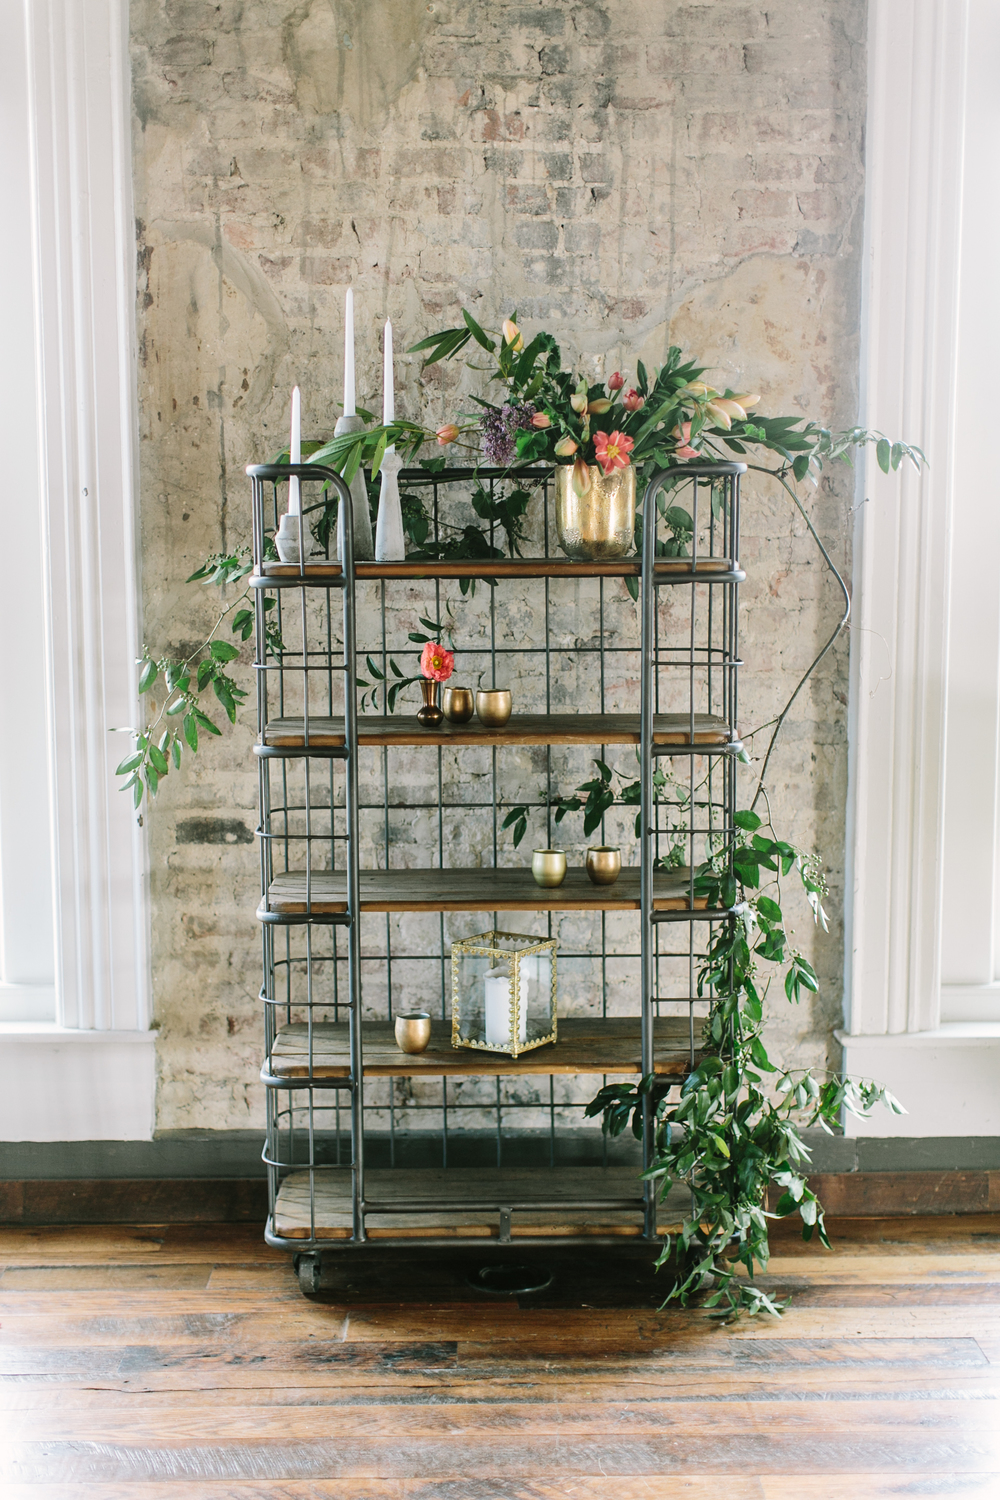 Vine-home decor-classroom for creatives-trellis-indoor greenery-floral inspiration-